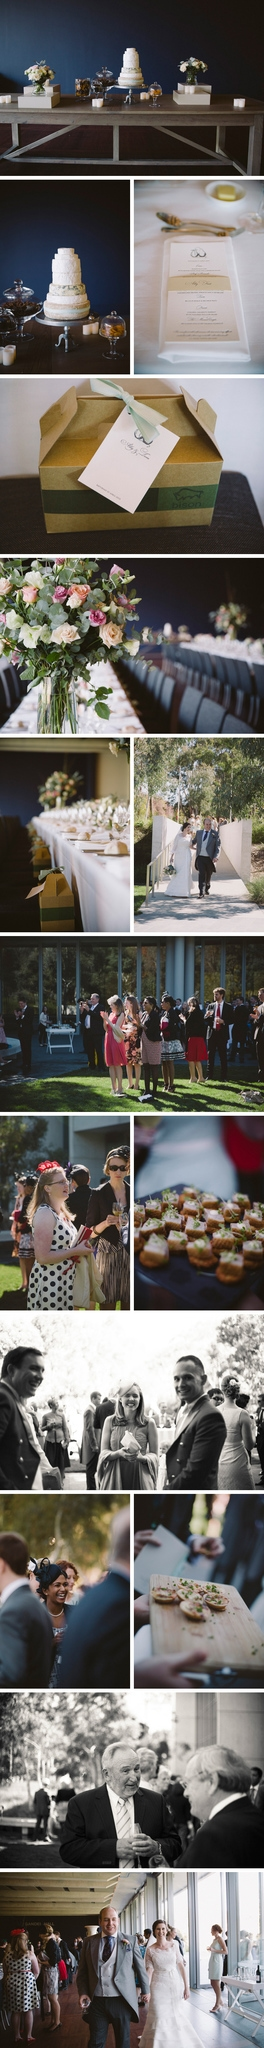 National Gallery of Australia Wedding